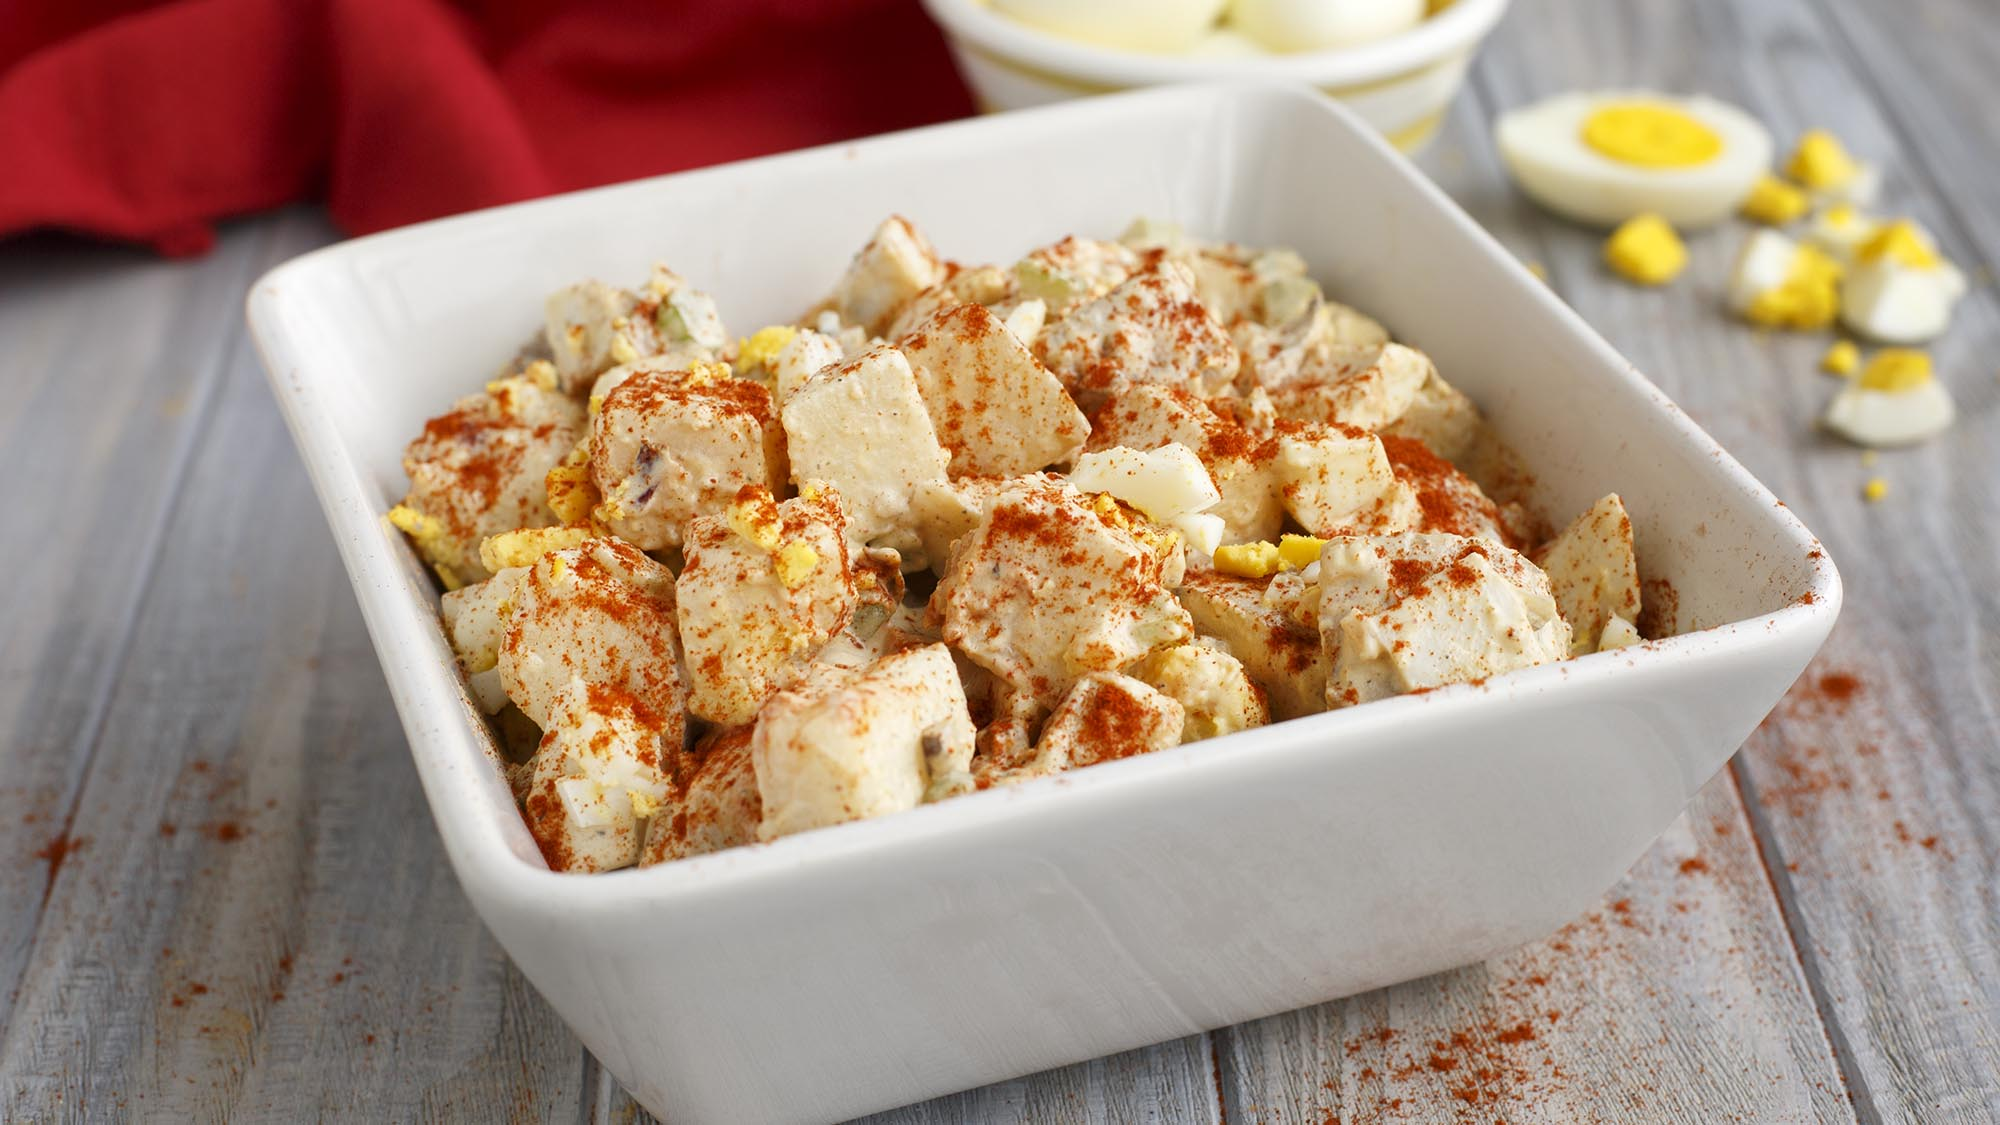 McCormick Deviled Egg Potato Salad